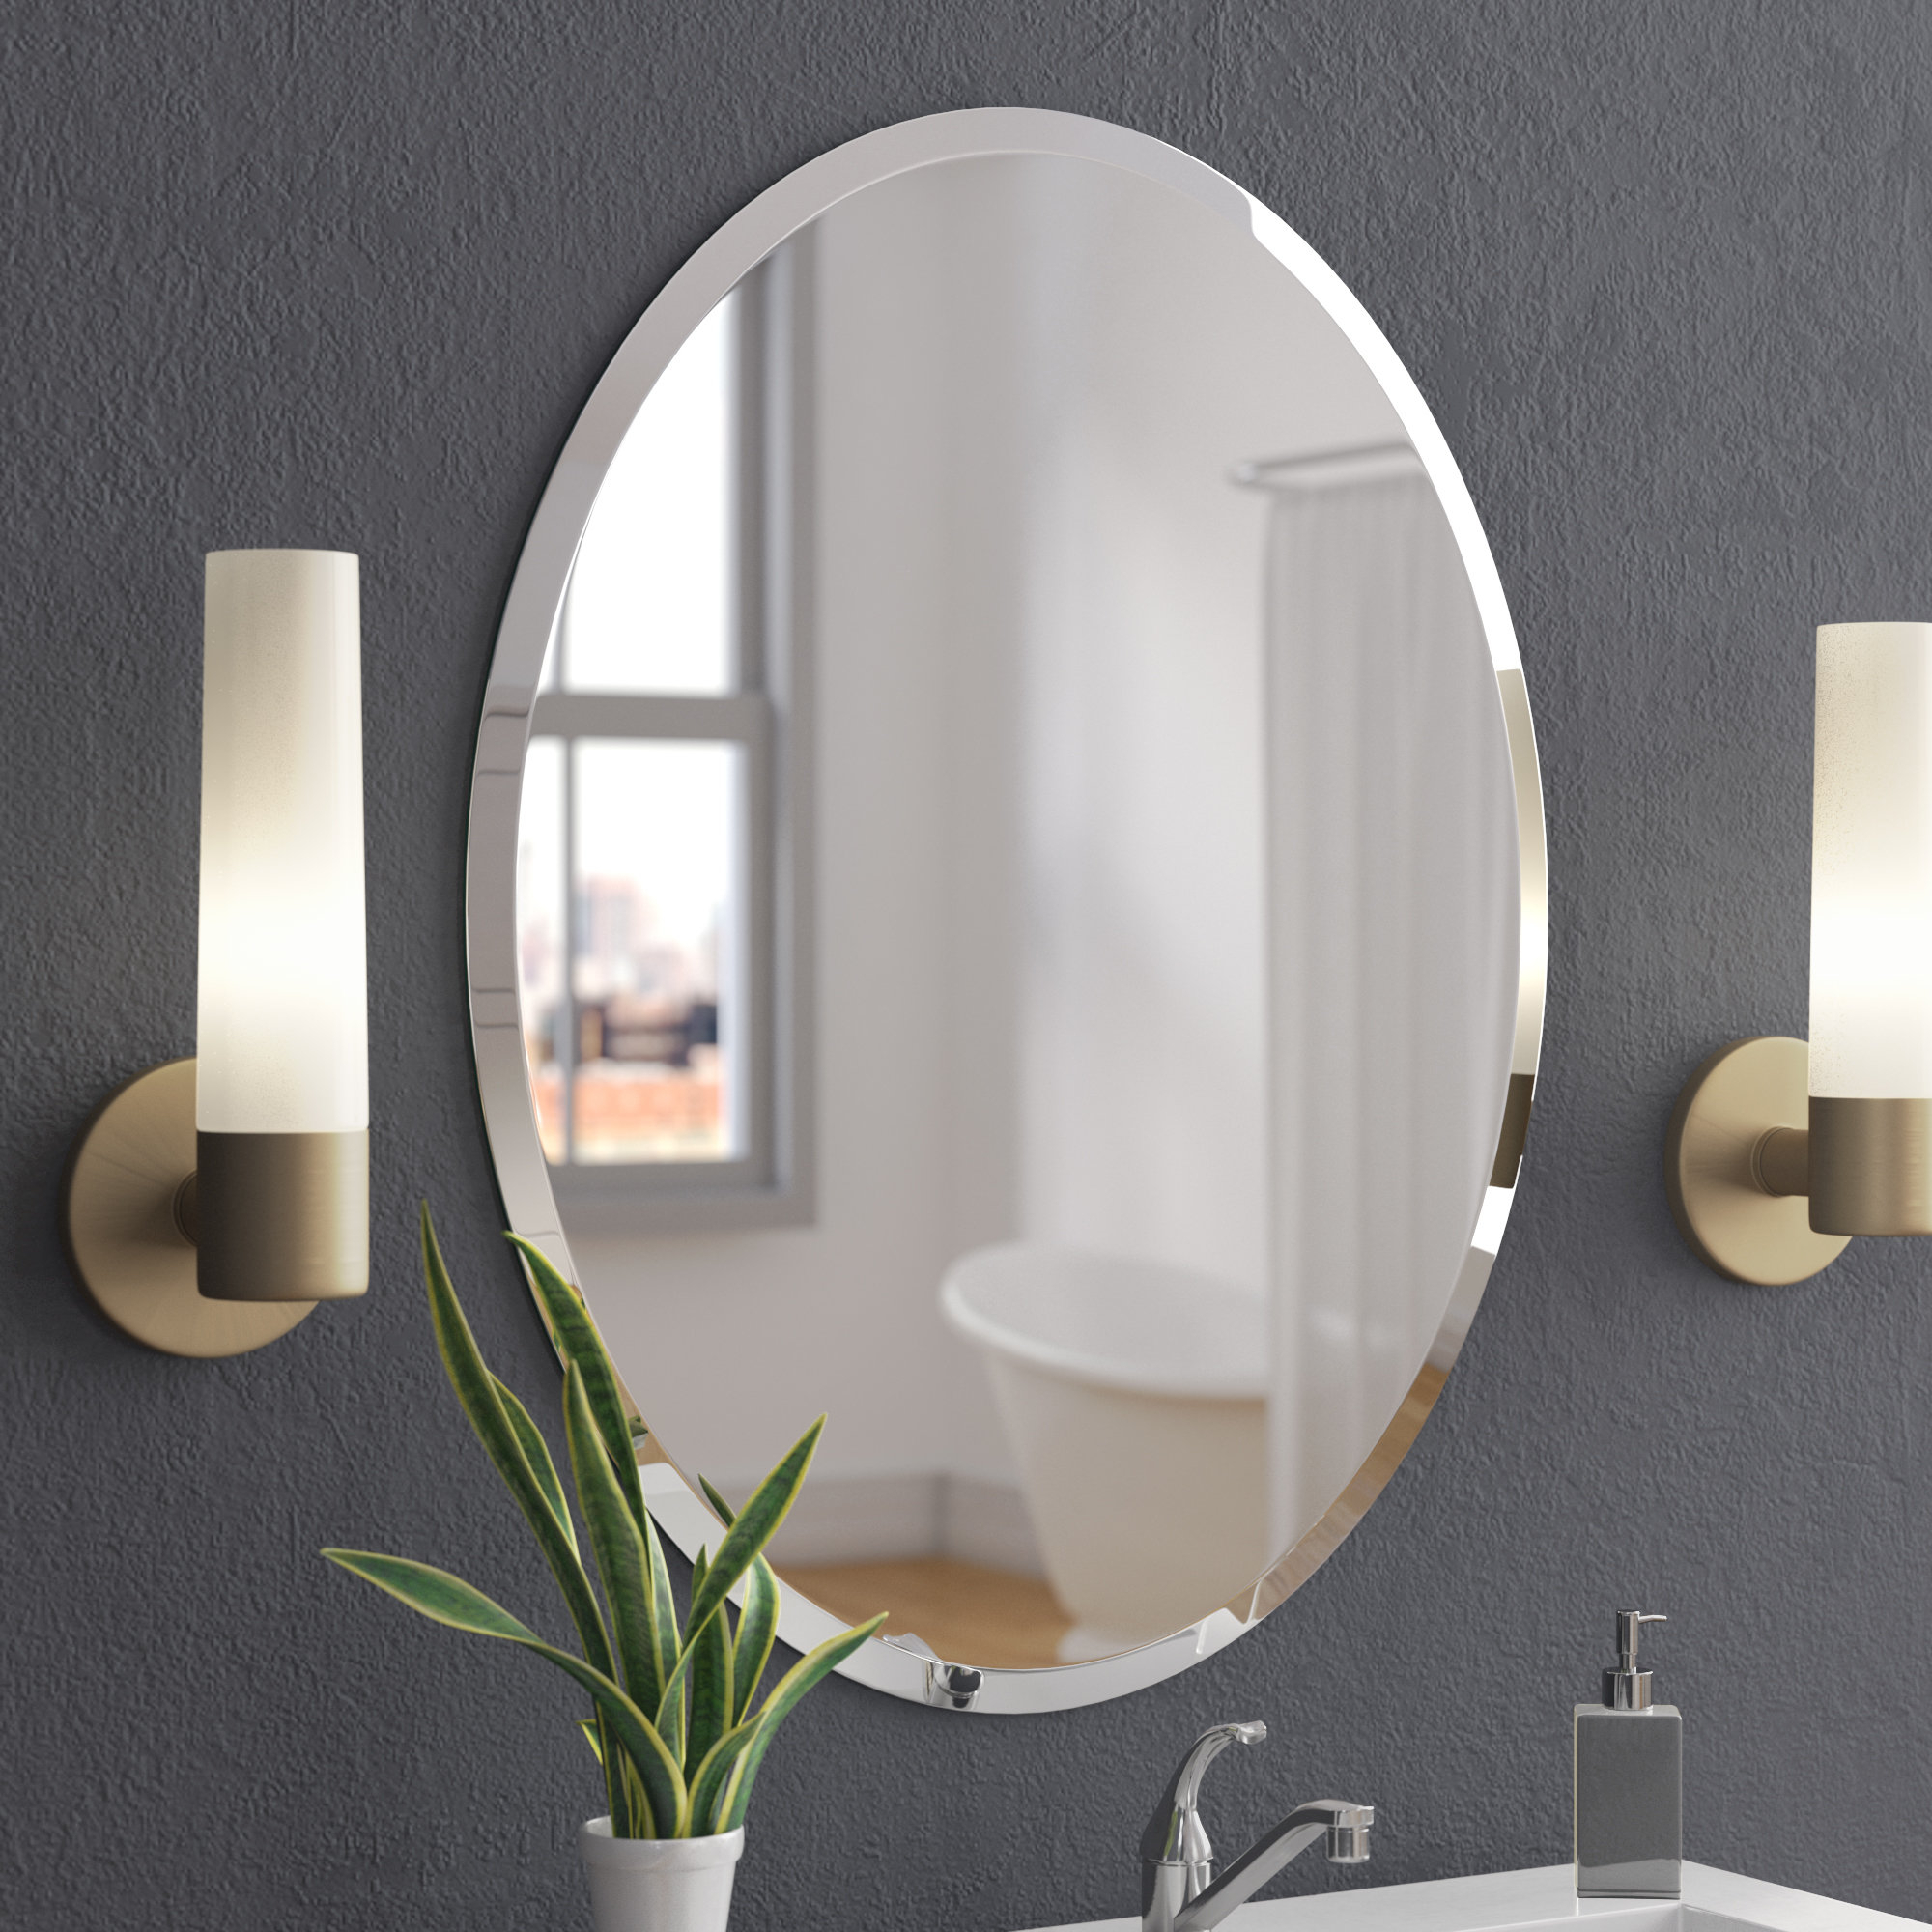 Etched Frameless Wall Mirror | Wayfair Within Celeste Frameless Round Wall Mirrors (View 11 of 20)